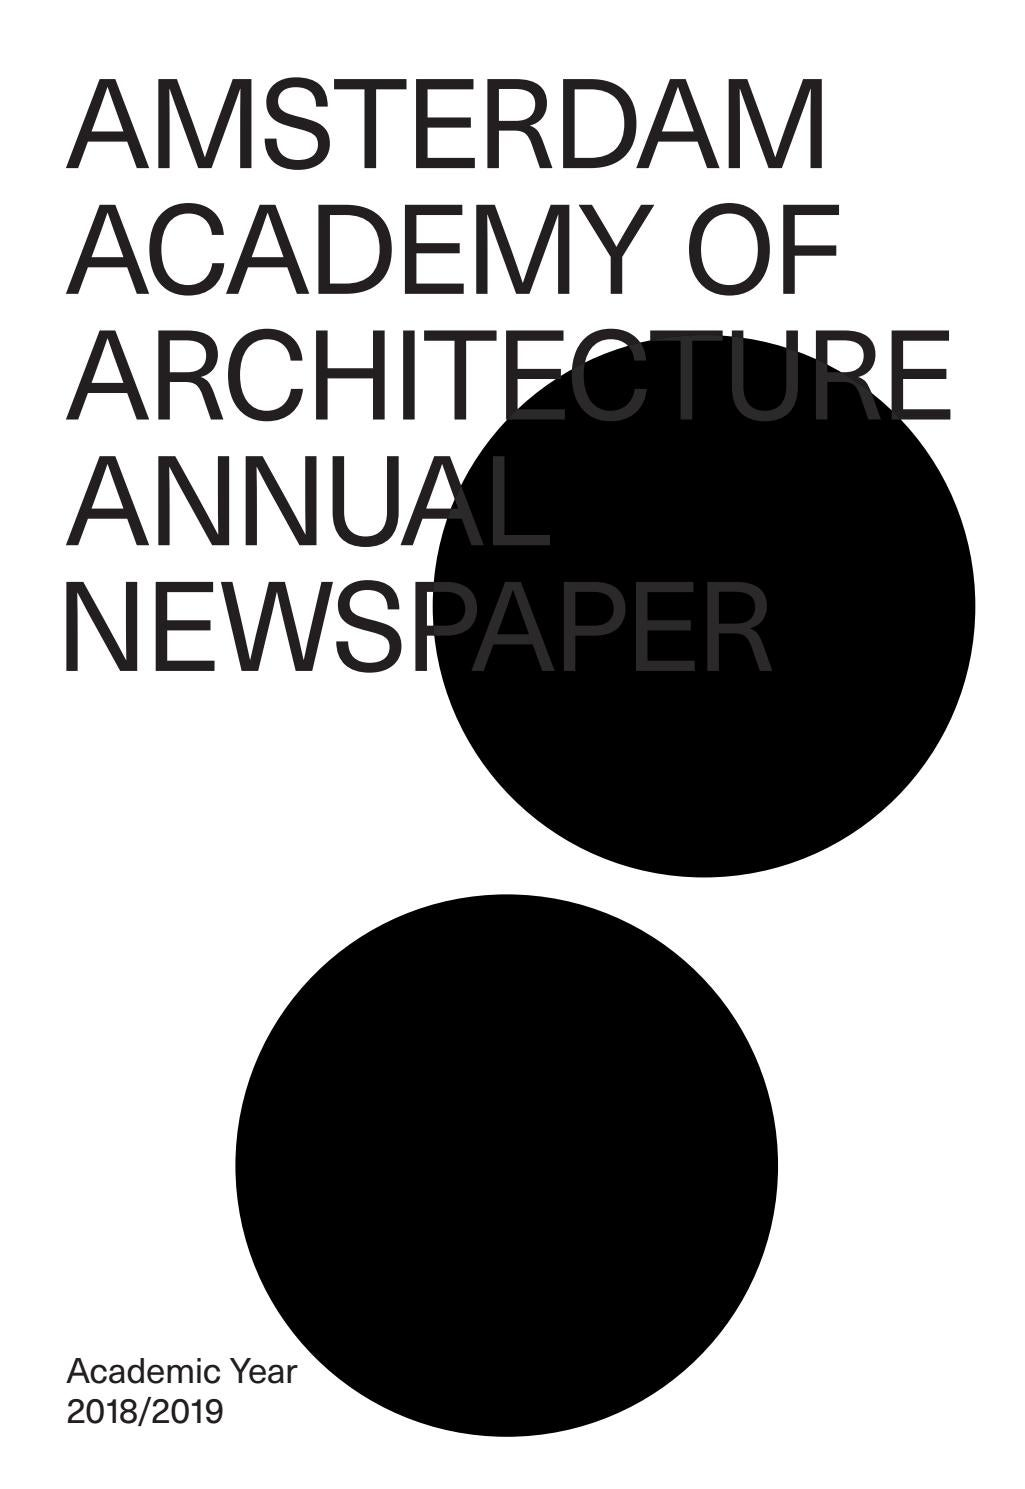 Annual Newspaper 2018 2019 By Amsterdam Academy Of Architecture